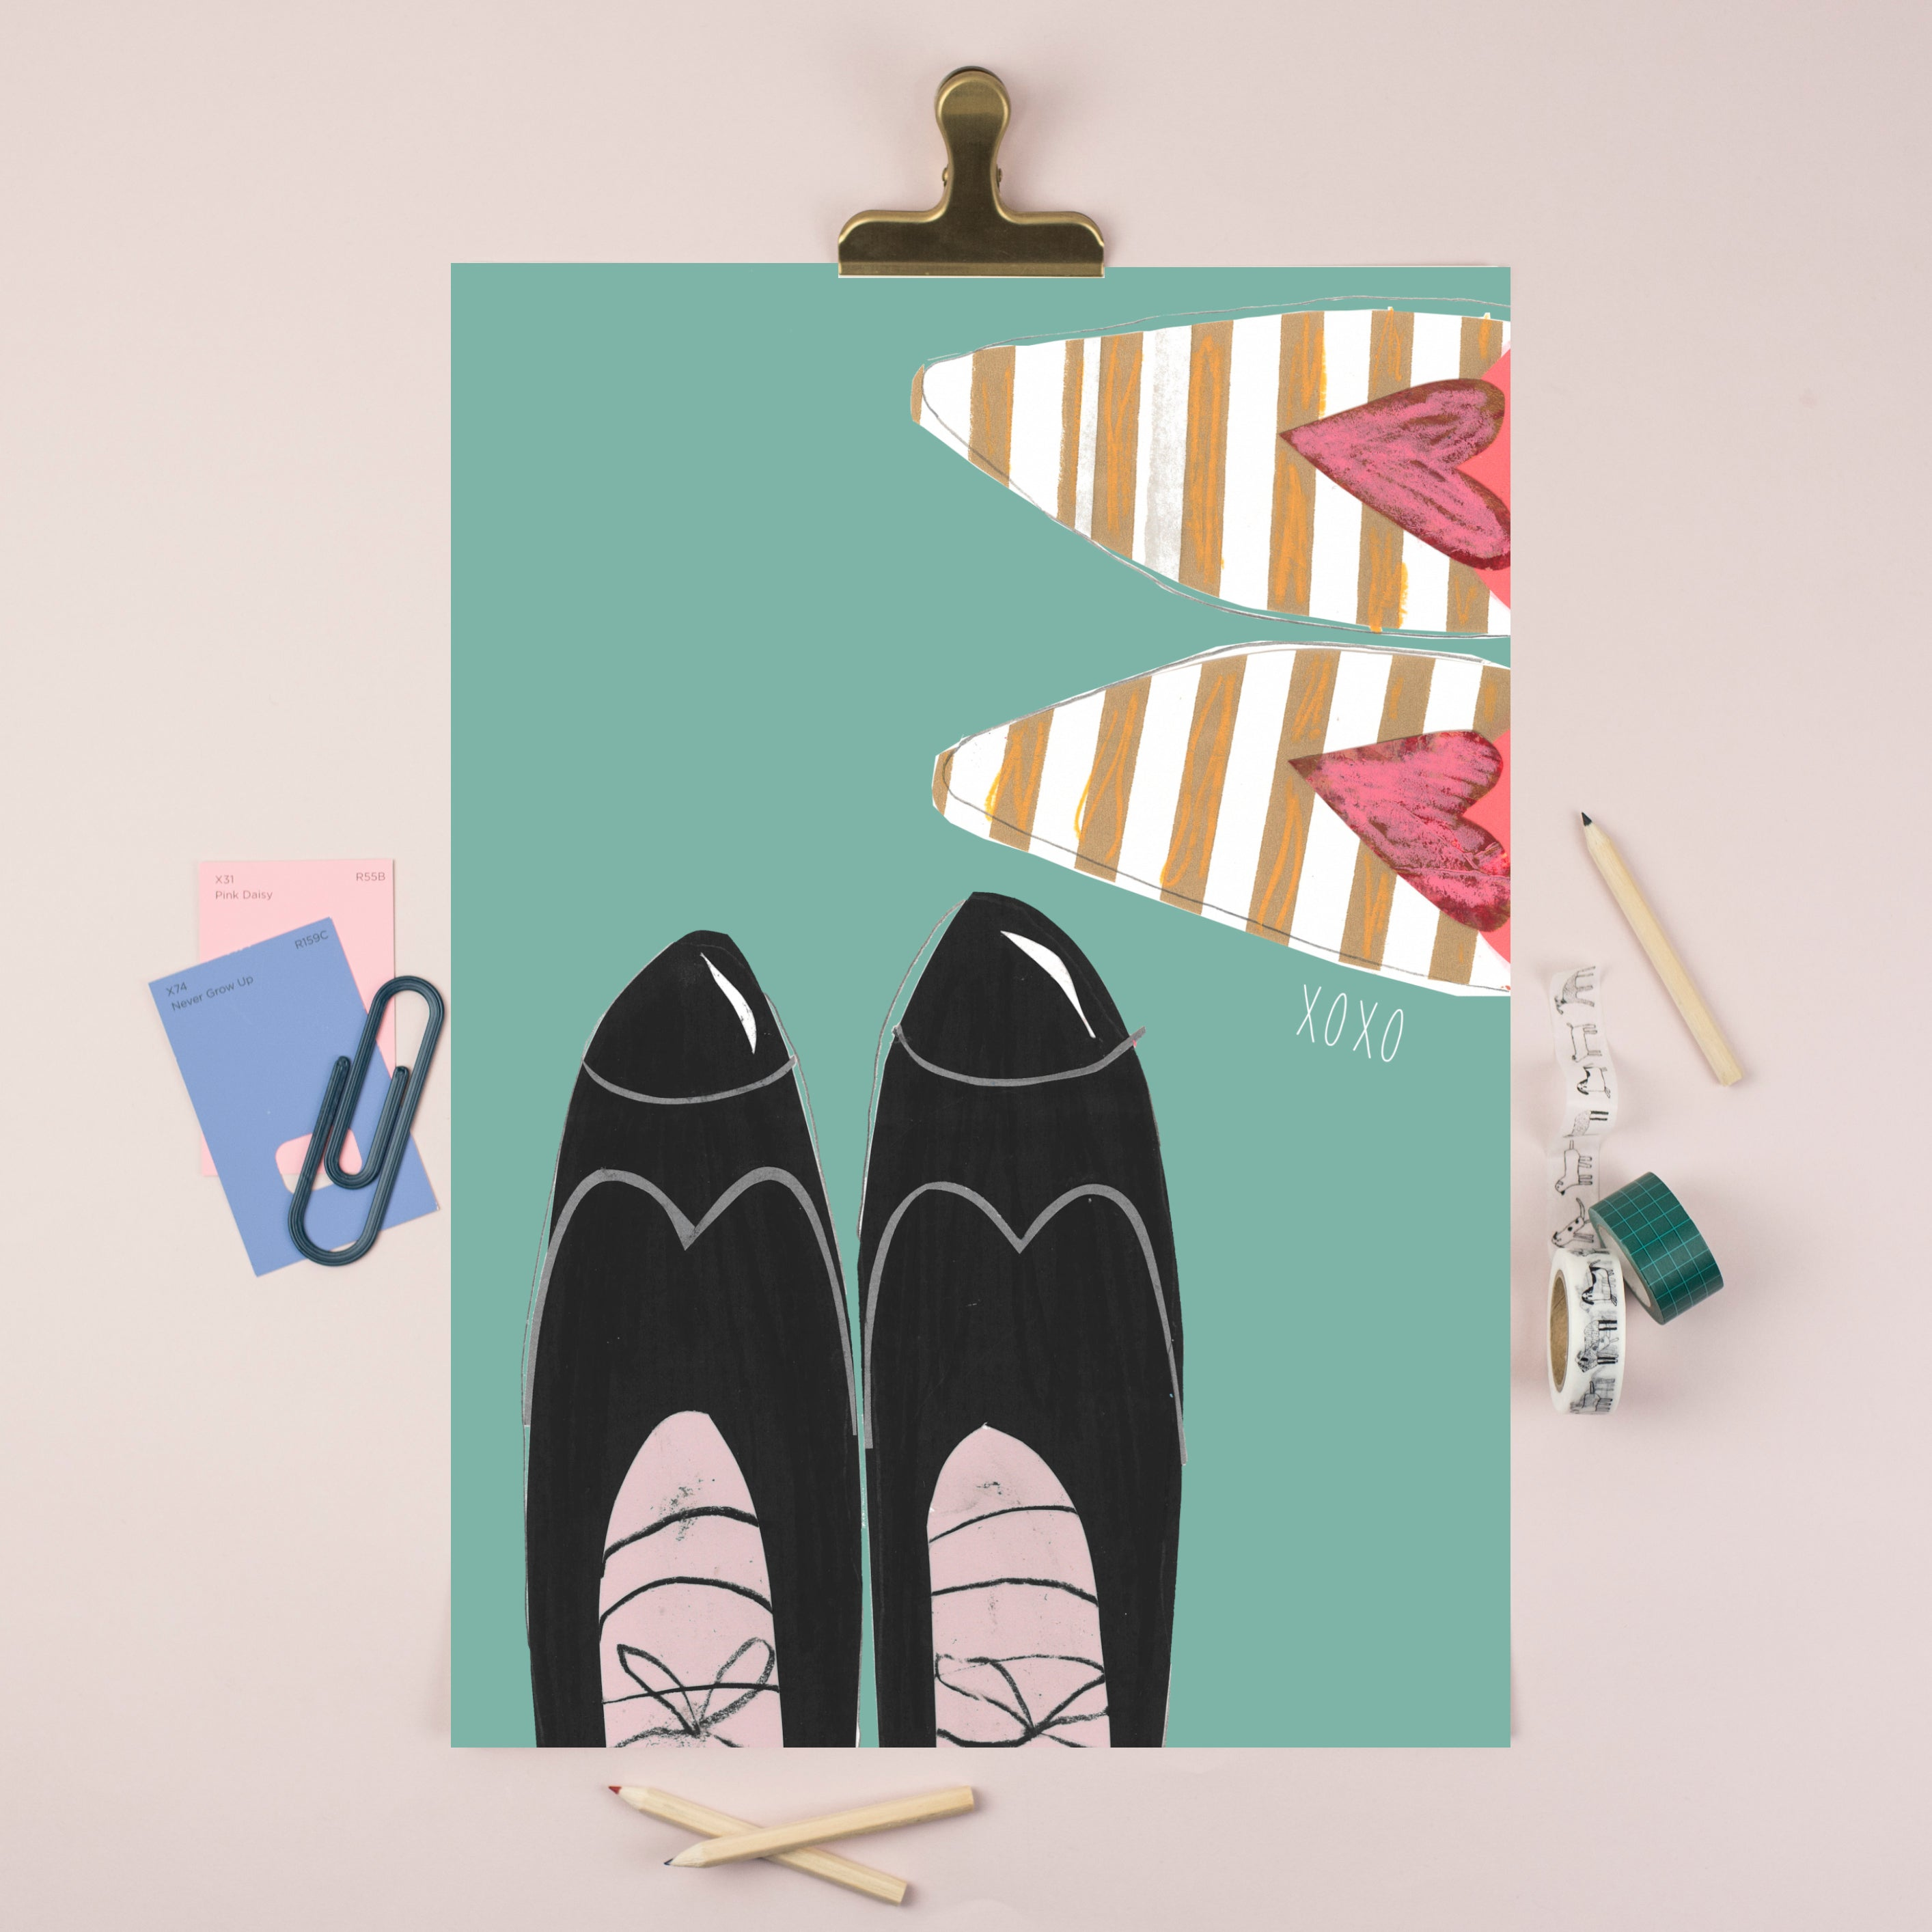 A5 Wedding Shoes Illustrated Print